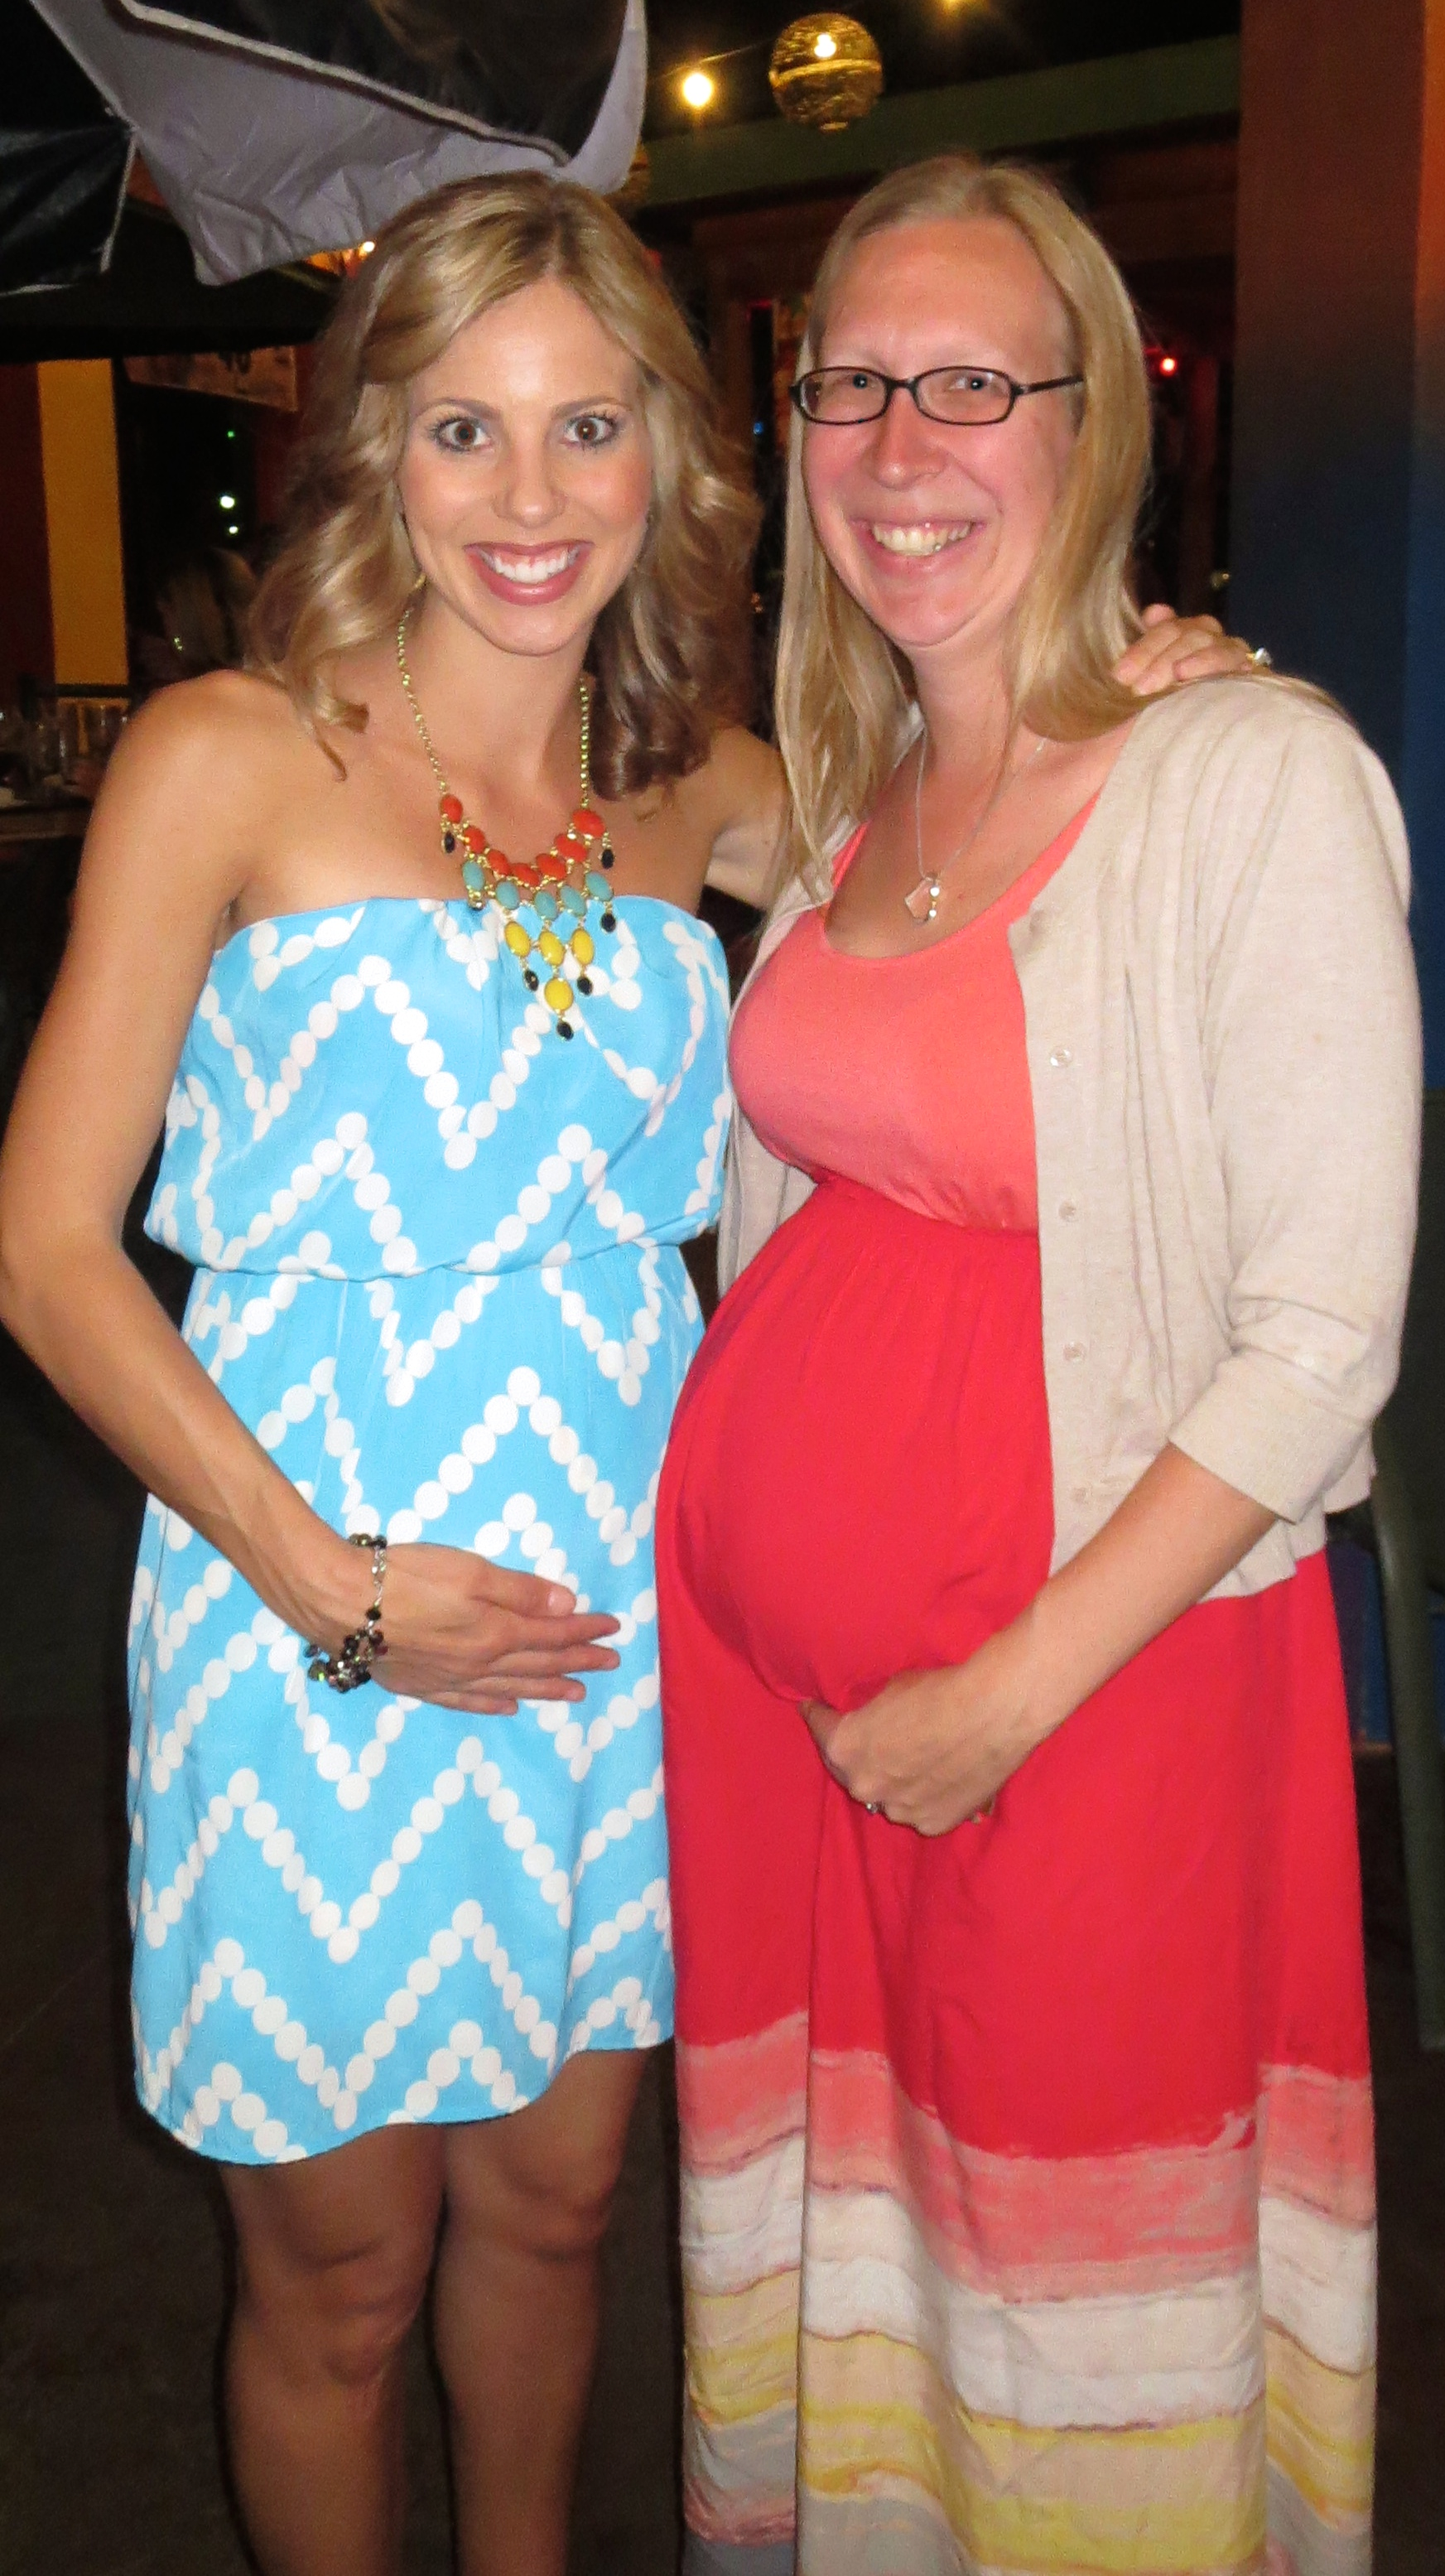 May 2013 Going Away Party - I was almost 4 months pregnant and Jennifer was less than a month away from Taylor's arrival!